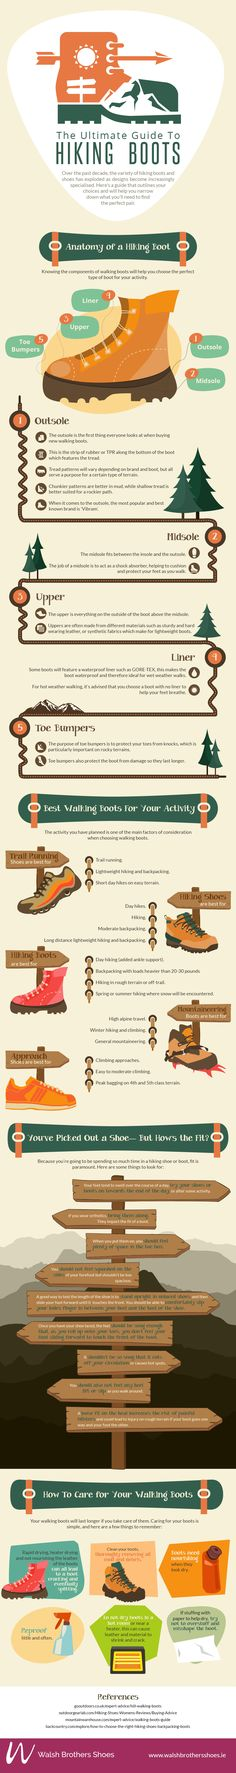 Walsh Brothers Shoes provides this handy way to make boot buying a painless experience!